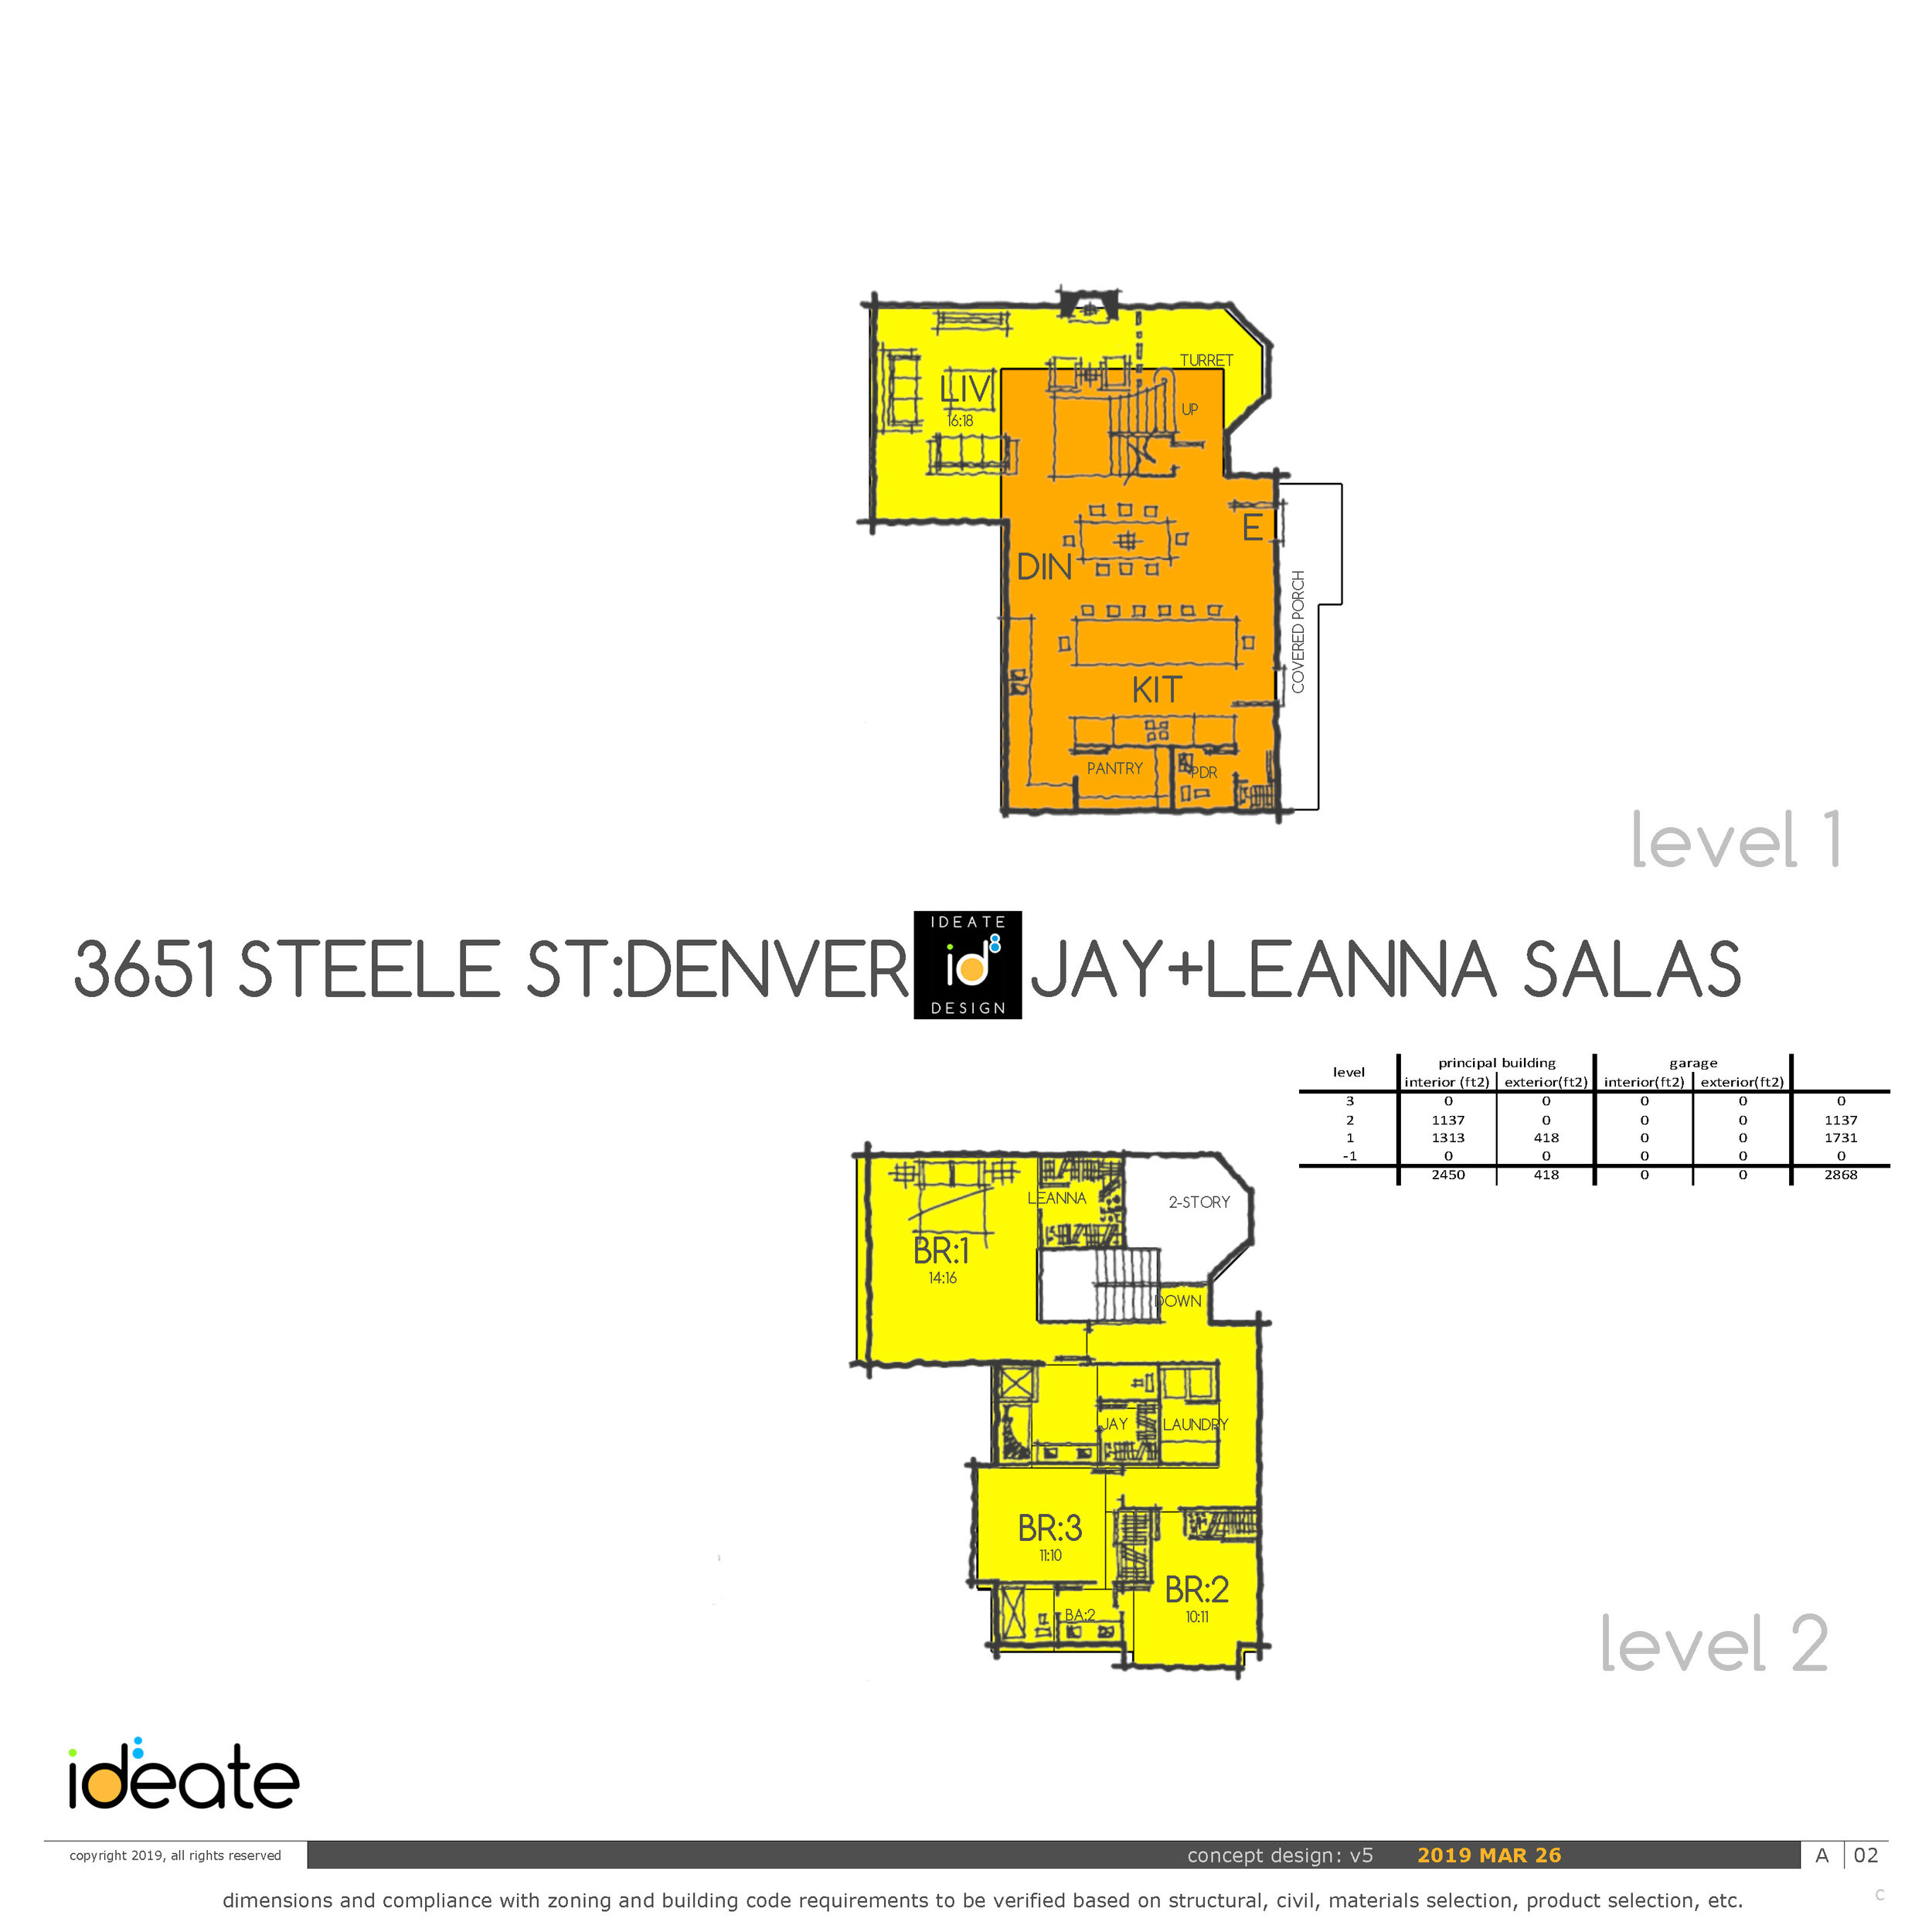 2019_03mar25 salas LAYOUT v6_Page_2.jpg